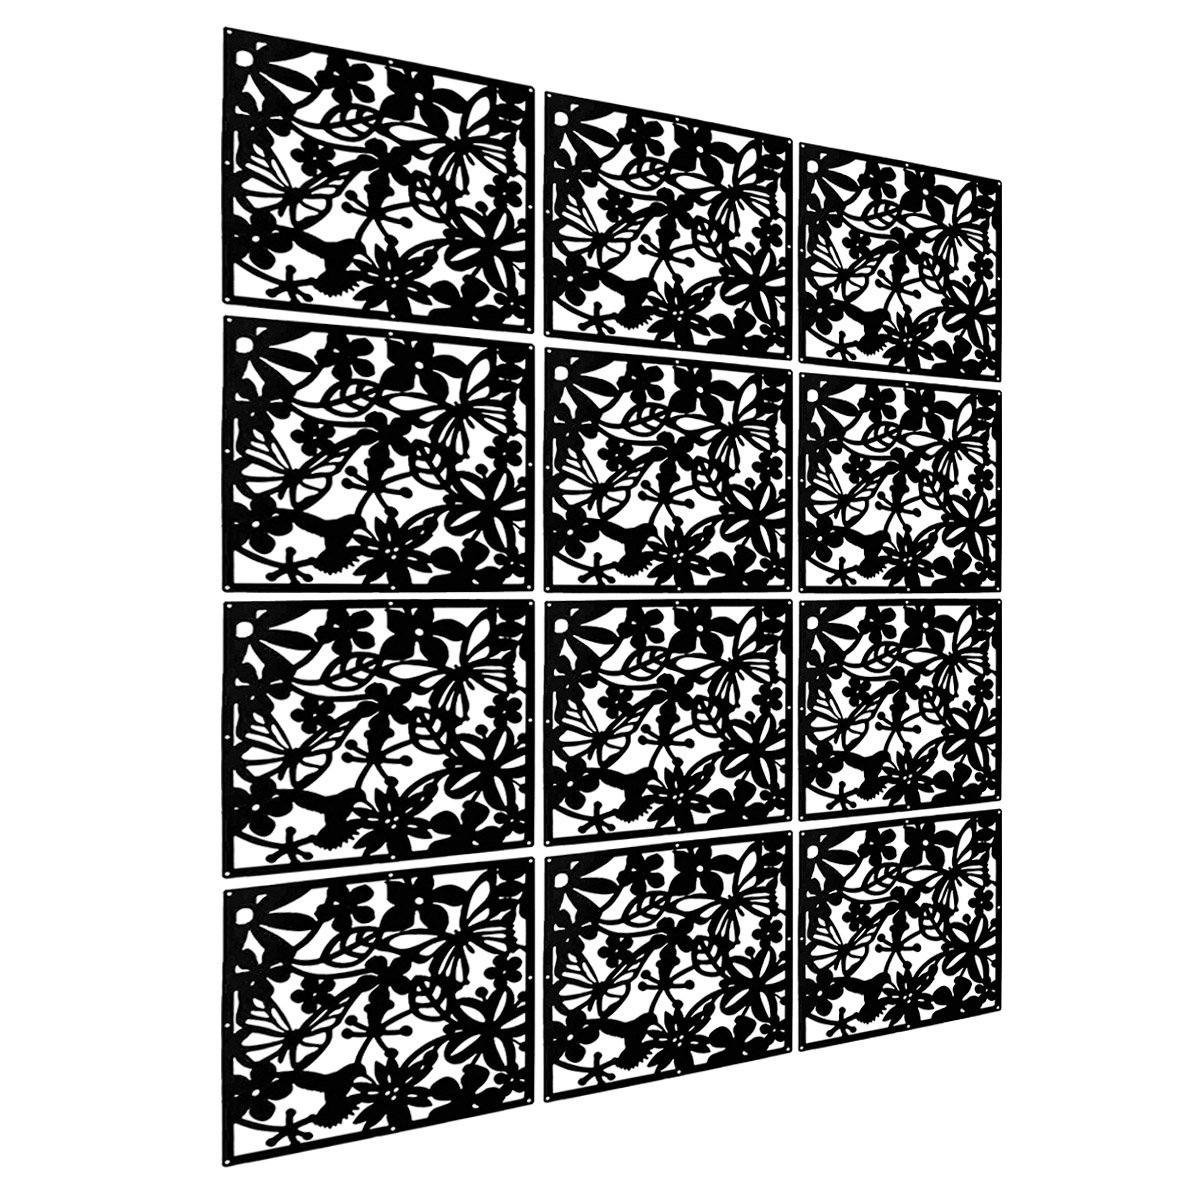 Hotel Dining Bar LANGUAN Study and Sitting-room LRZCGB Hanging Room Divider,12pcs Safety PVC Screen Panel with Butterfly Flower for Decorating Living